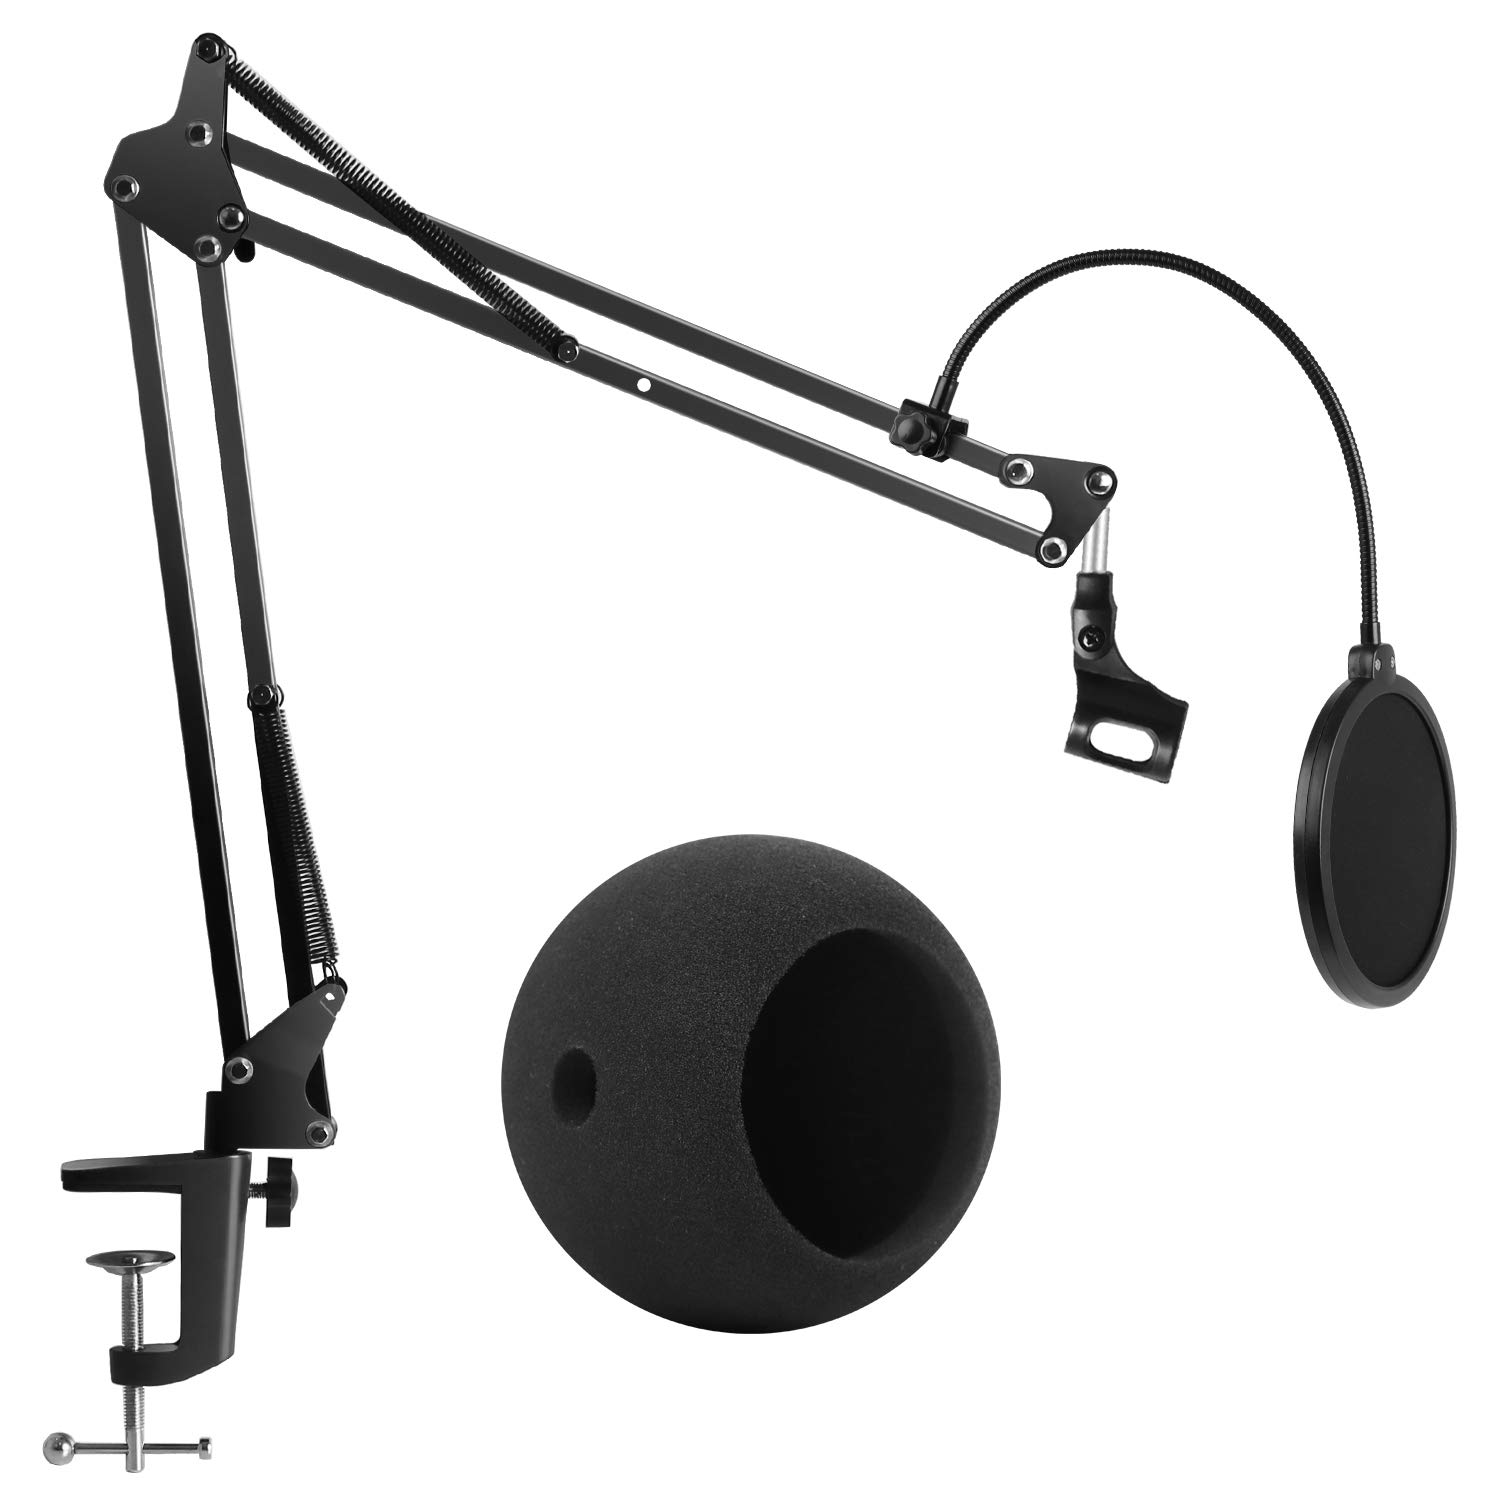 InnoGear Adjustable Microphone Suspension Boom Scissor Arm Stand, Max Load 1.5 KG Compact Mic Stand with Microphone Windscreen and Dual Layered Mic Pop Filter for Blue Snowball iCE and Blue Snowball by InnoGear (Image #1)